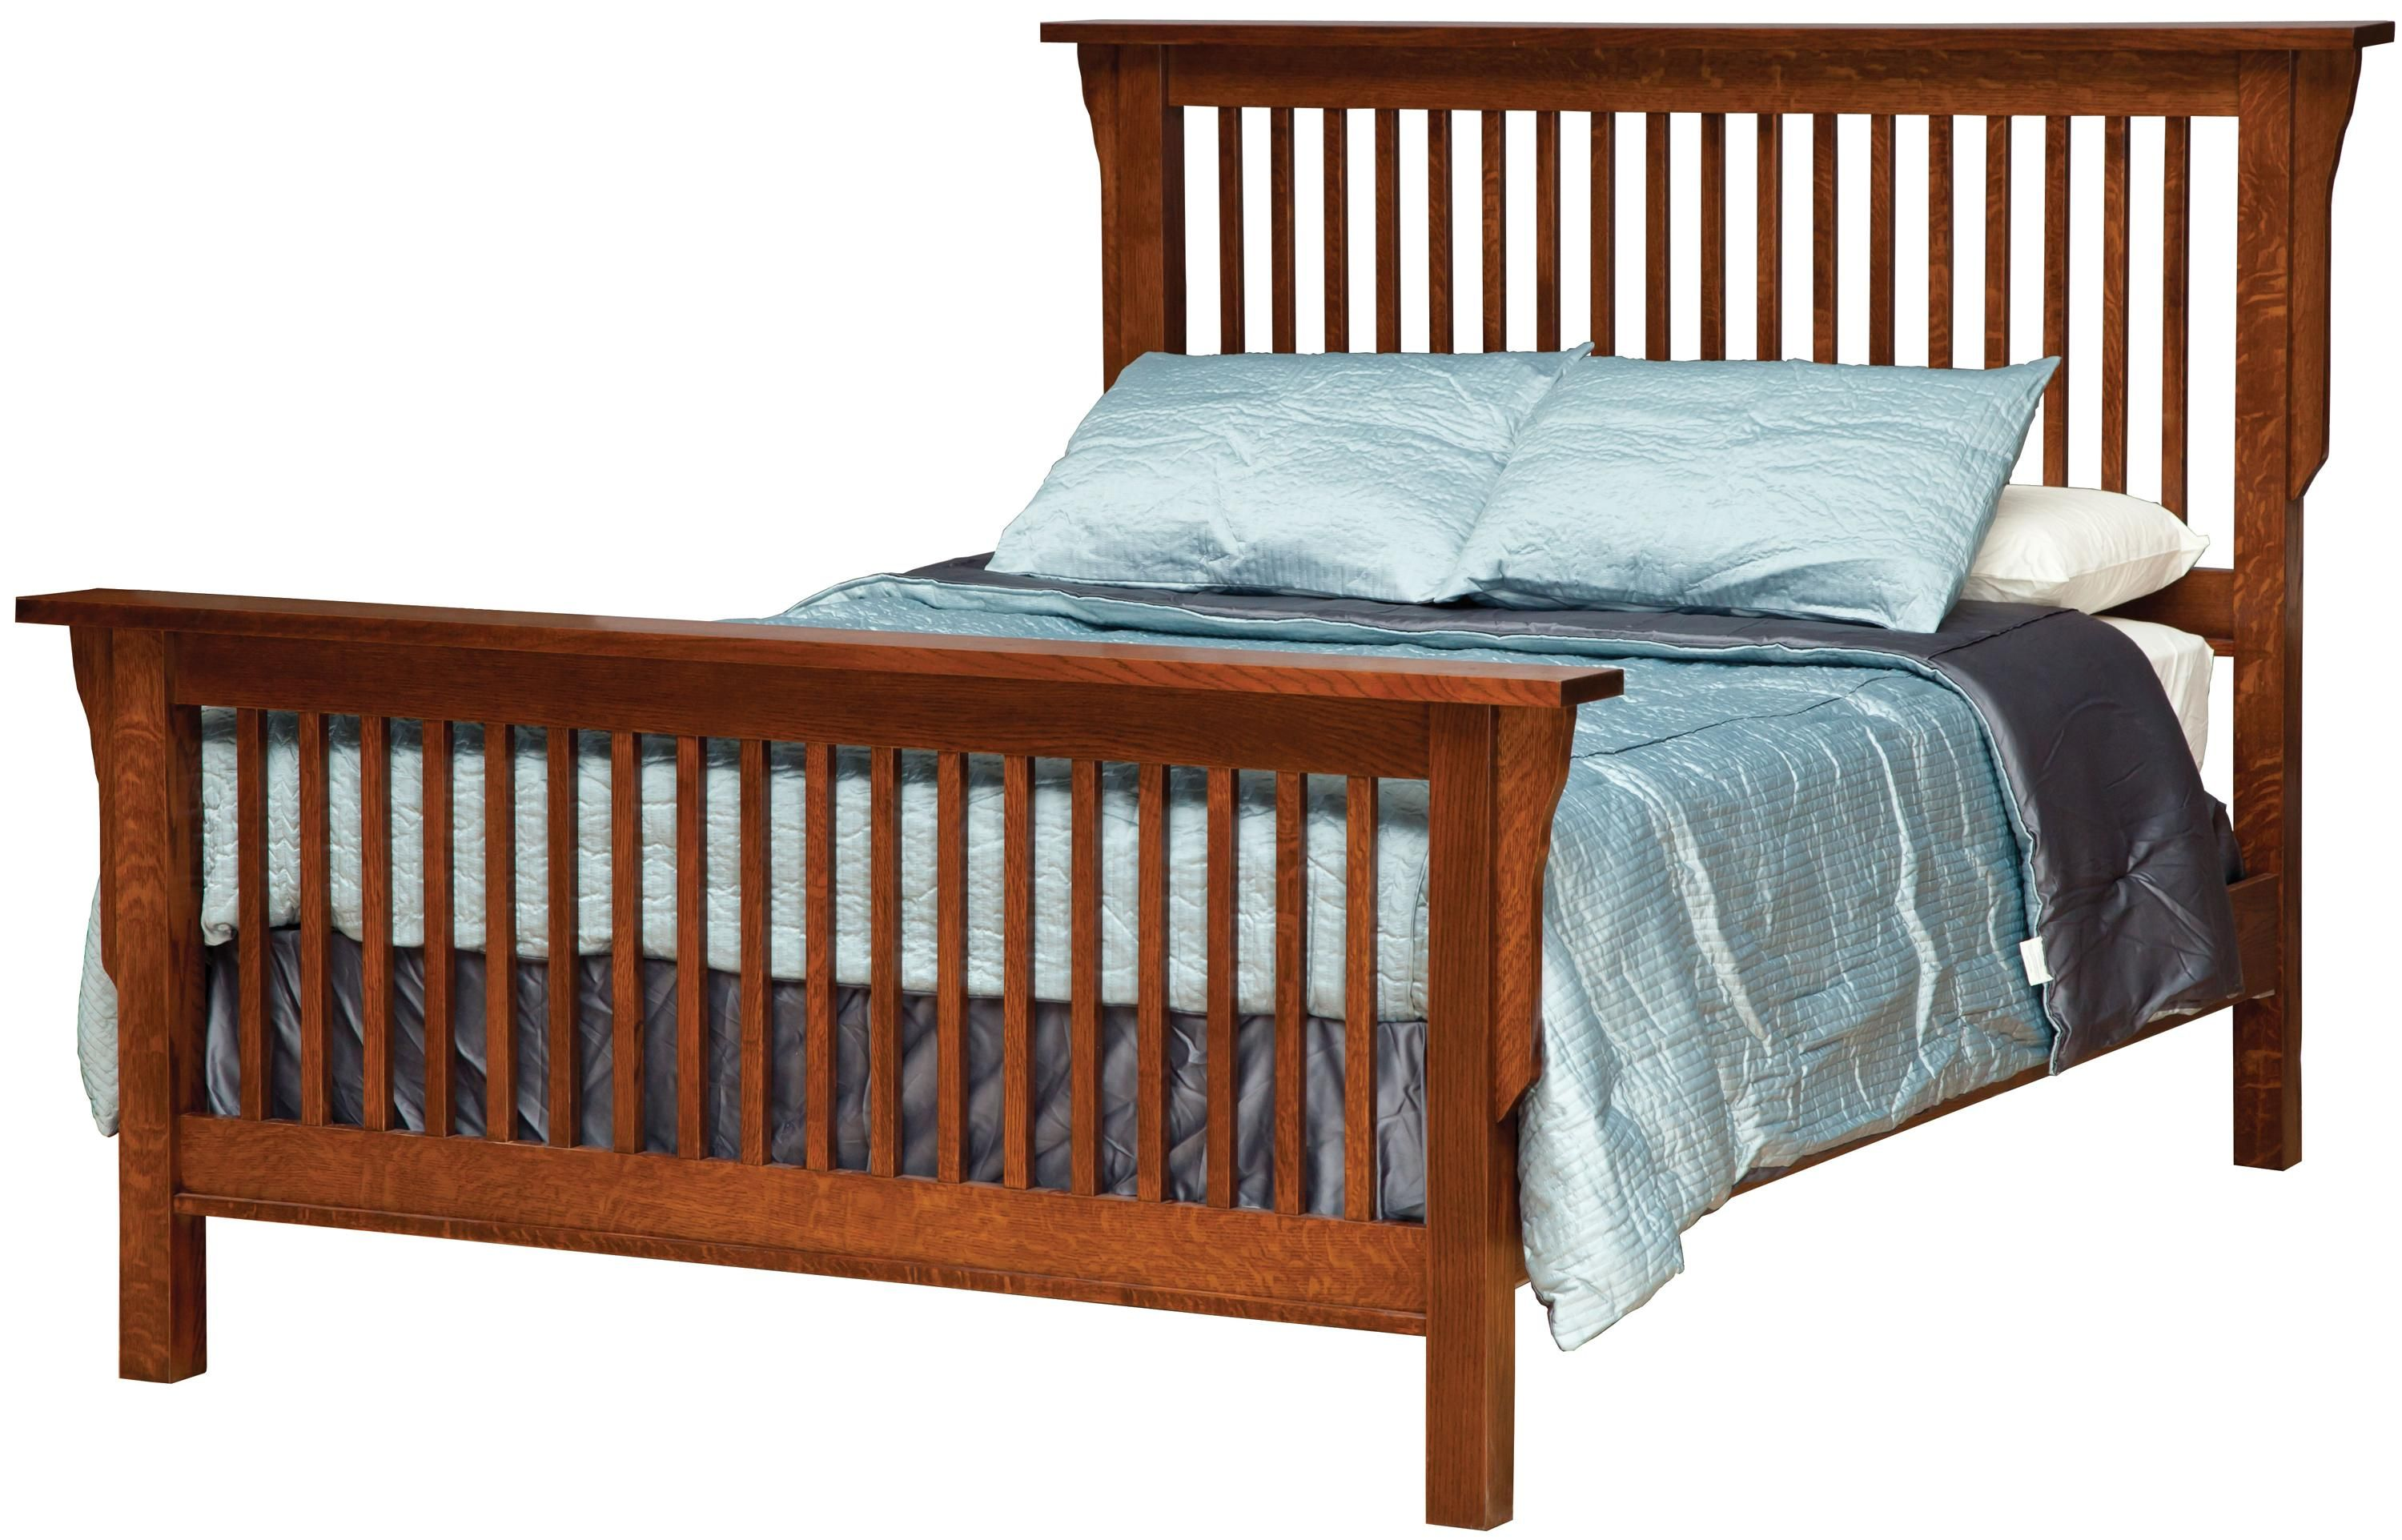 California king mission style frame bed with headboard for Mission style bed frame plans